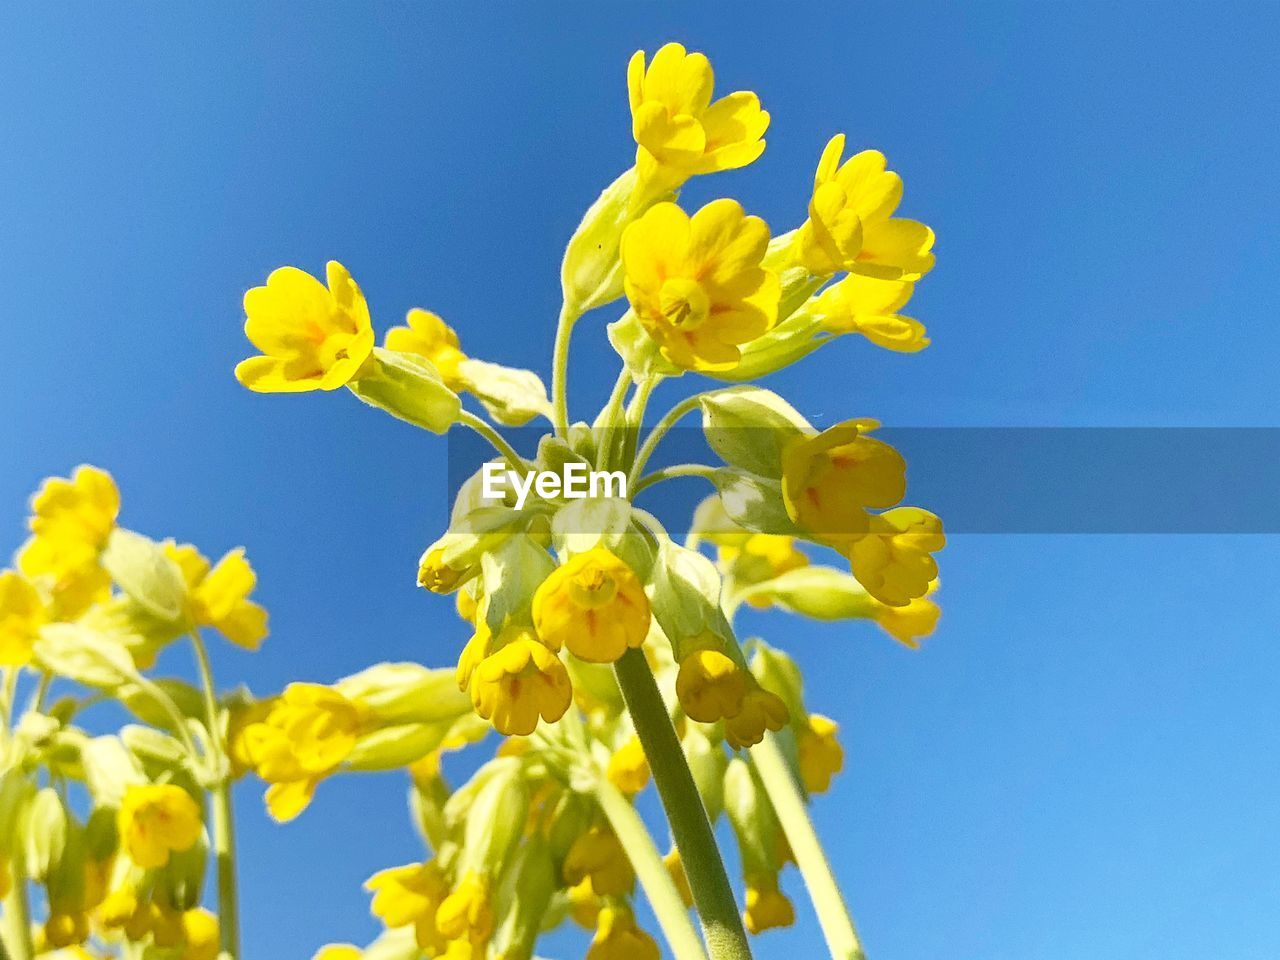 flower, flowering plant, yellow, beauty in nature, vulnerability, fragility, blue, sky, plant, freshness, growth, nature, clear sky, close-up, petal, low angle view, flower head, no people, day, inflorescence, springtime, outdoors, blue background